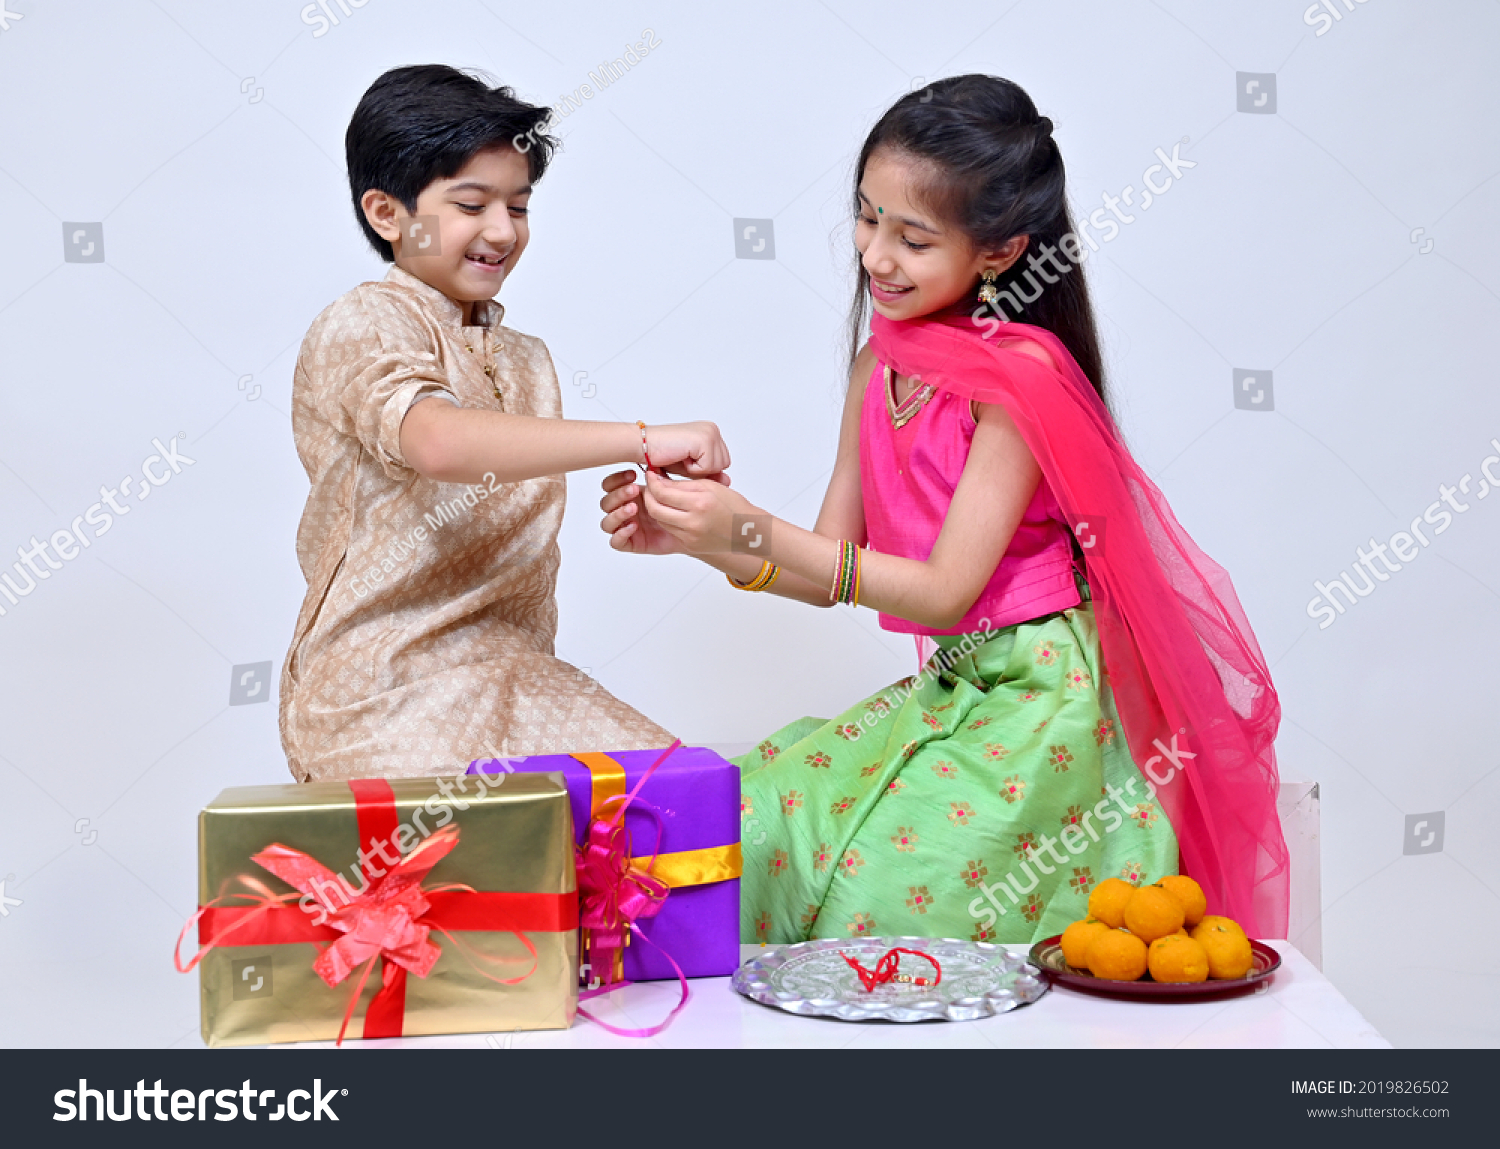 Hindu Brother and sister  in ethnic wear holding Indian sweets and gift box on the occasion of Raksha Bandhan festival #2019826502